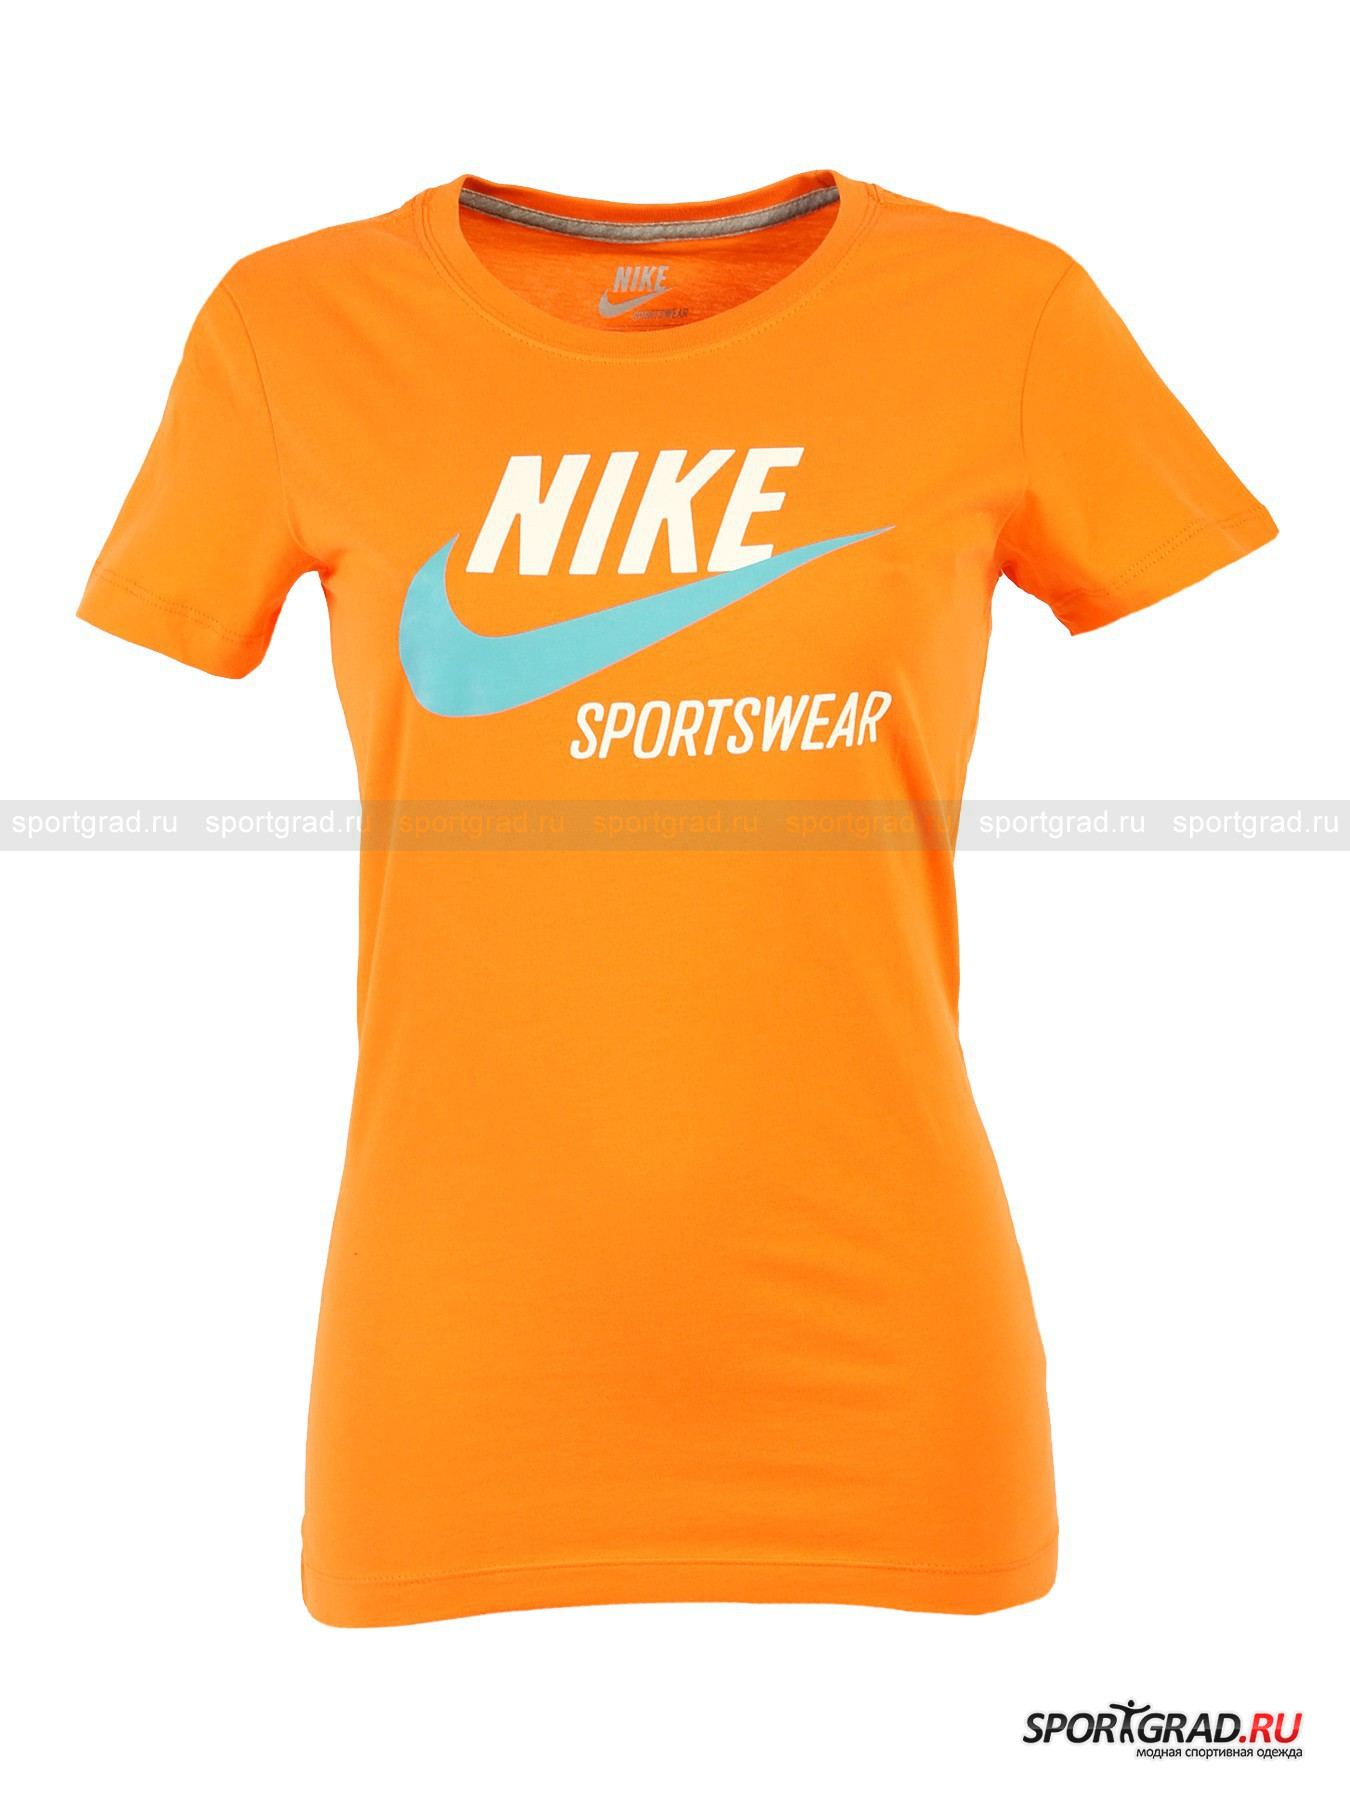 Футболка жен Better Core NSW Tee NIKE